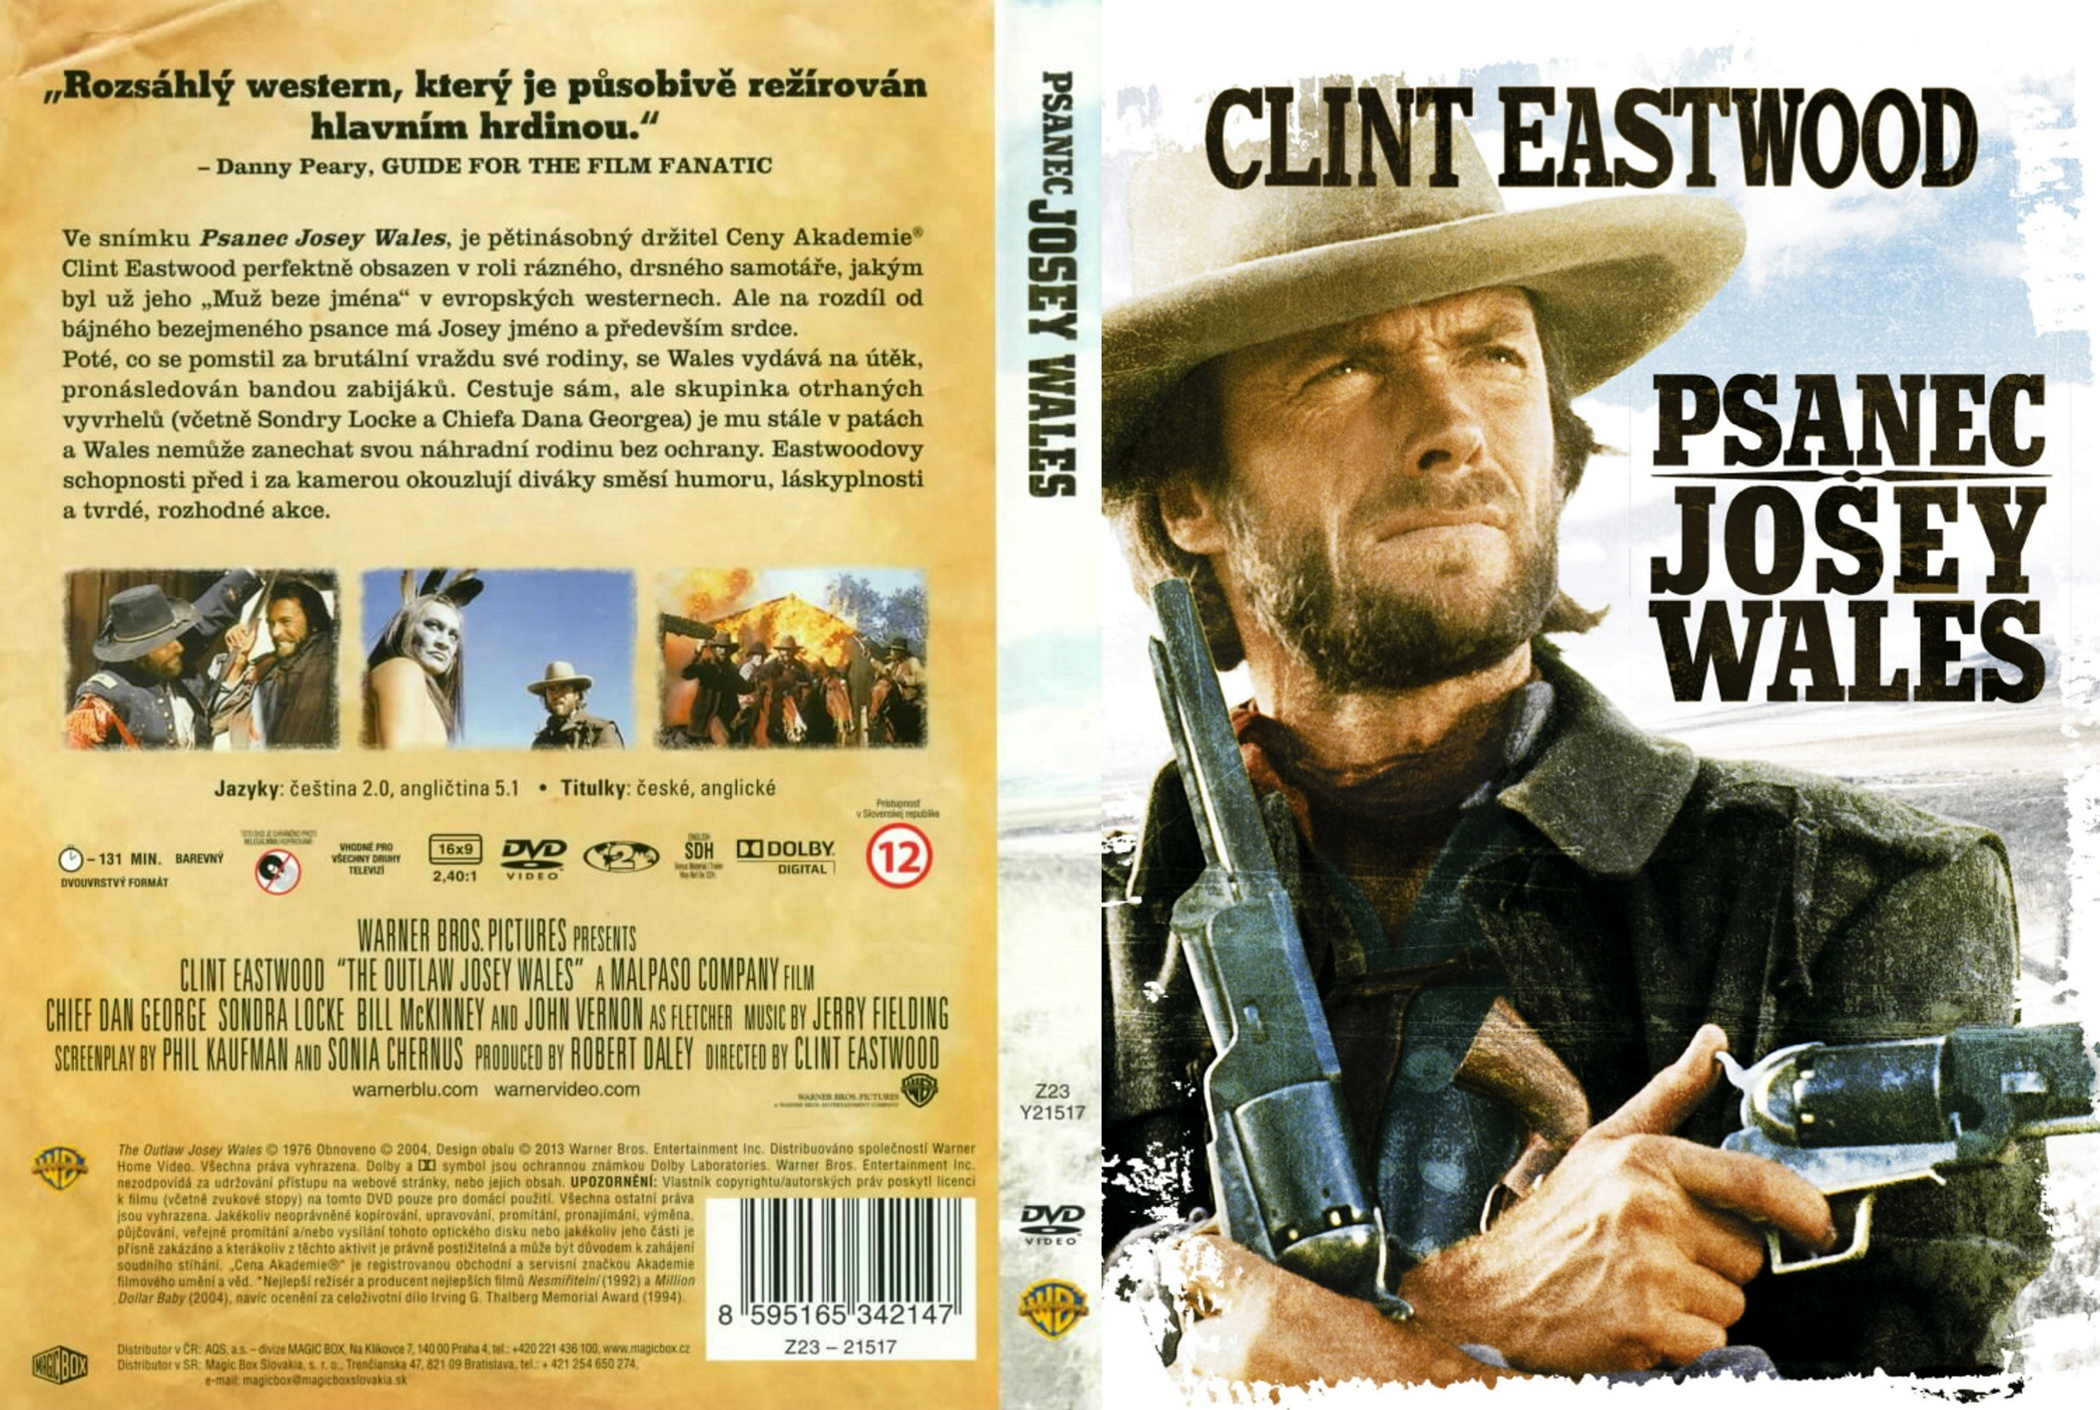 See The Outlaw Josey Wales Online Hitfix - kindlventures